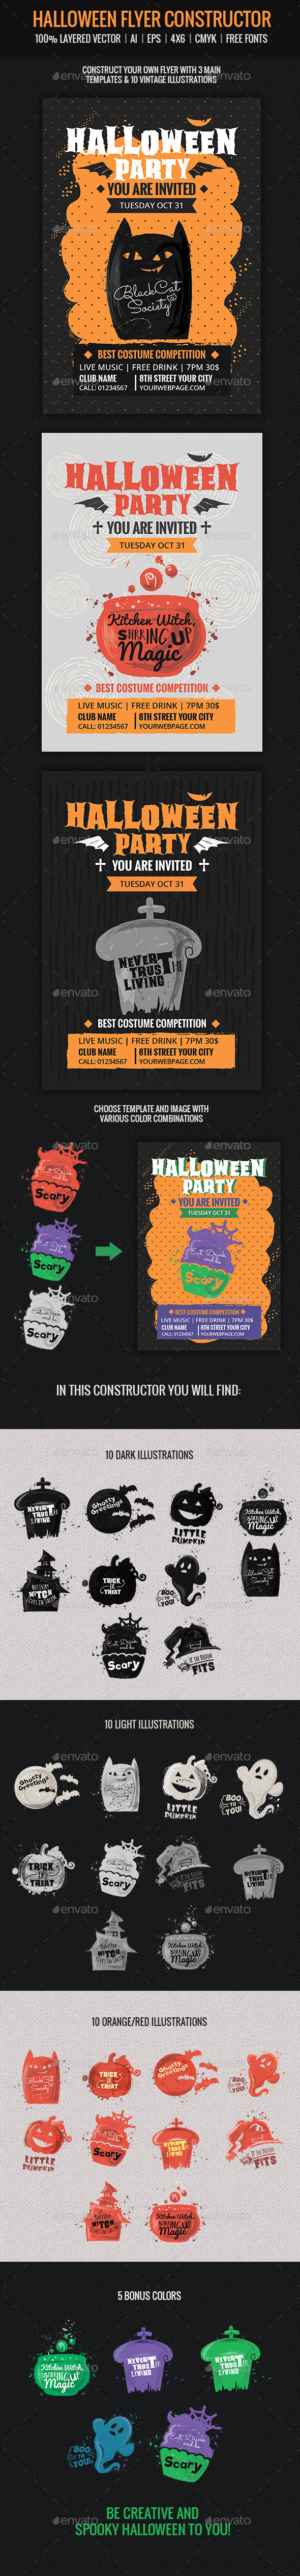 Halloween Flyer Constructor - Holidays Events